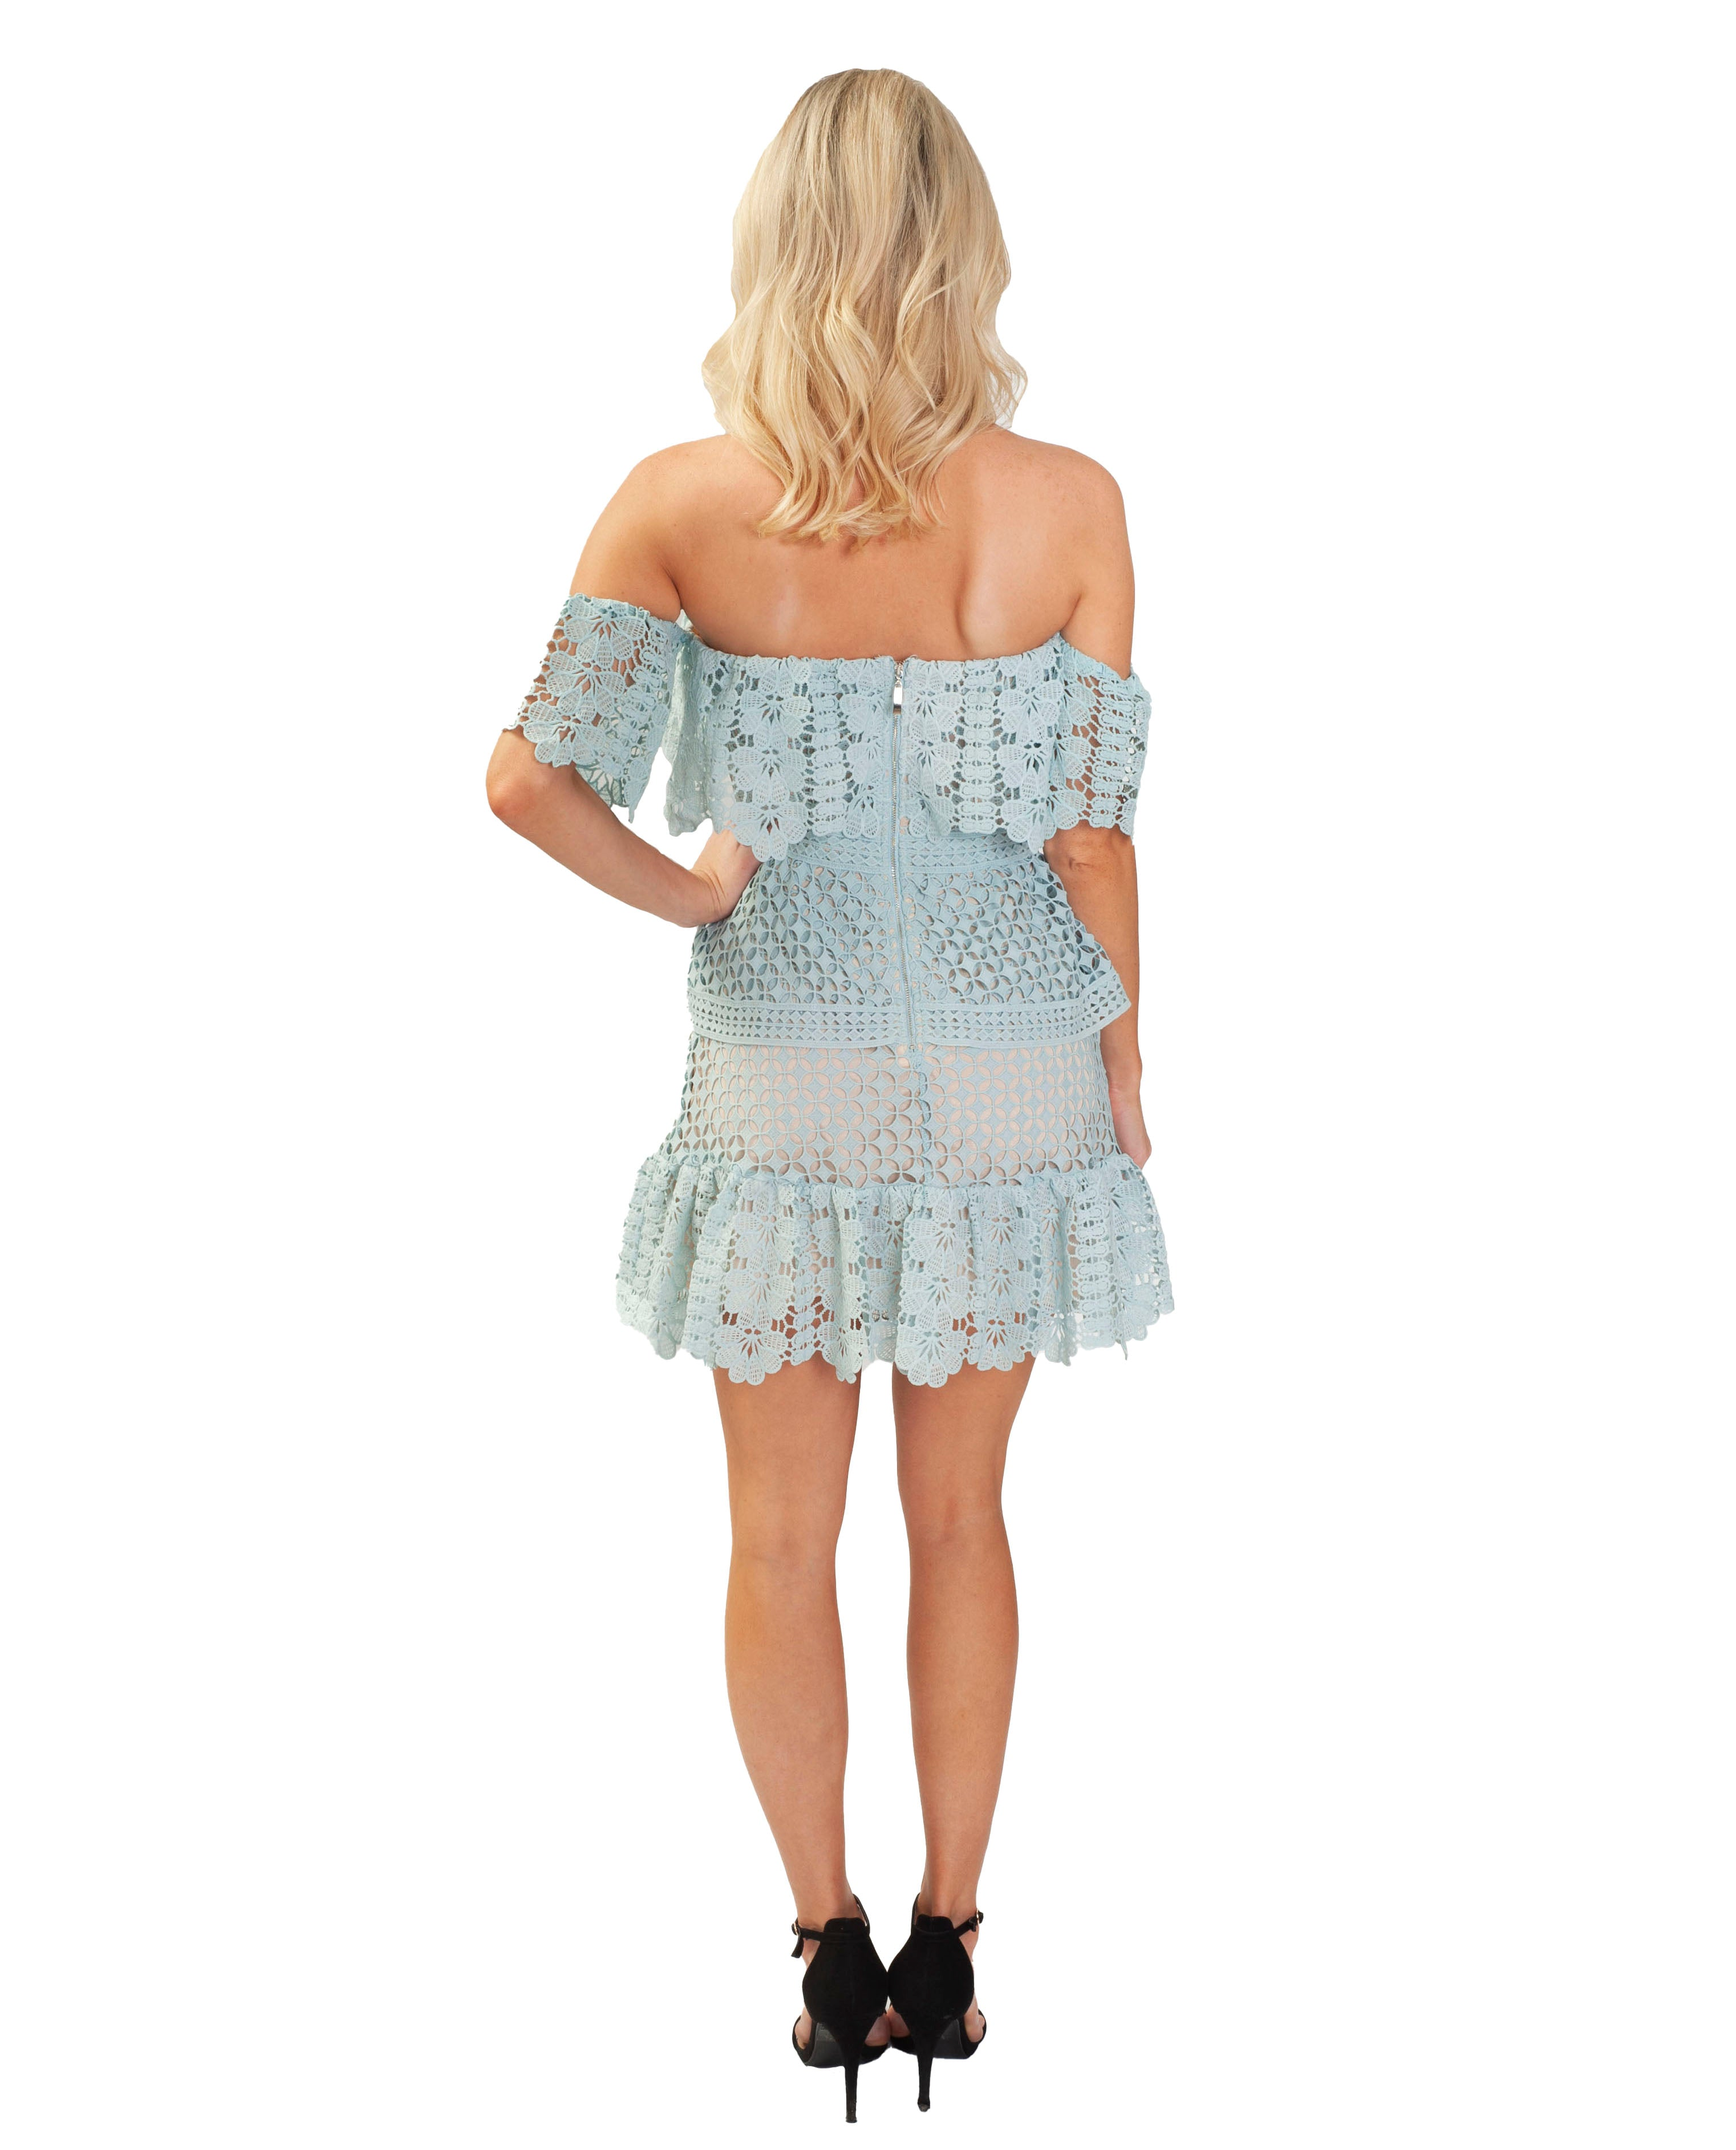 RUNAWAY THE LABEL BABY BLUE MINI DRESS WITH LACE DETAIL